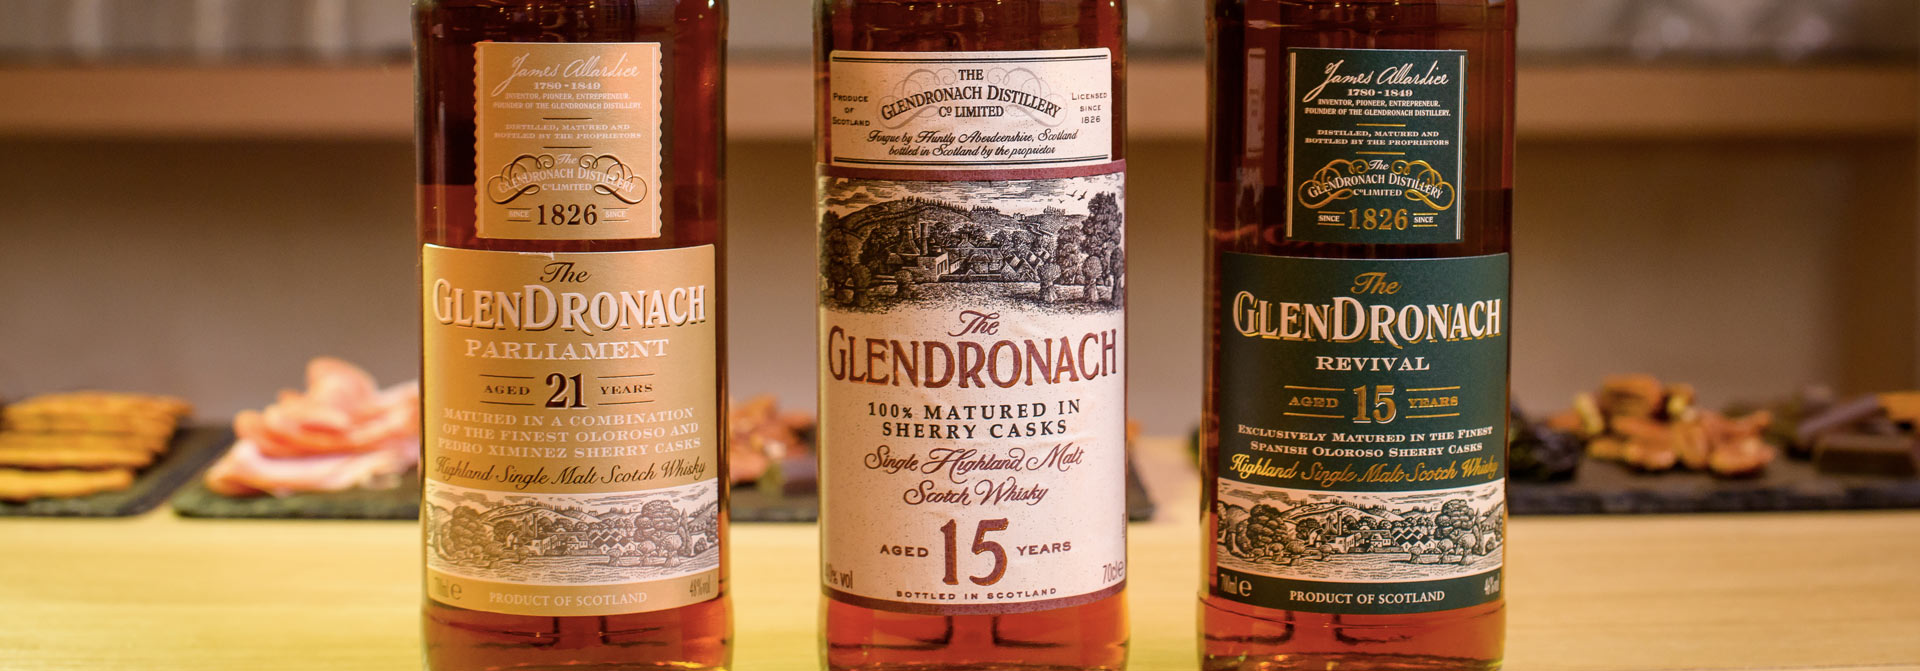 glendronach whisky tasting the tasters club ουισκι